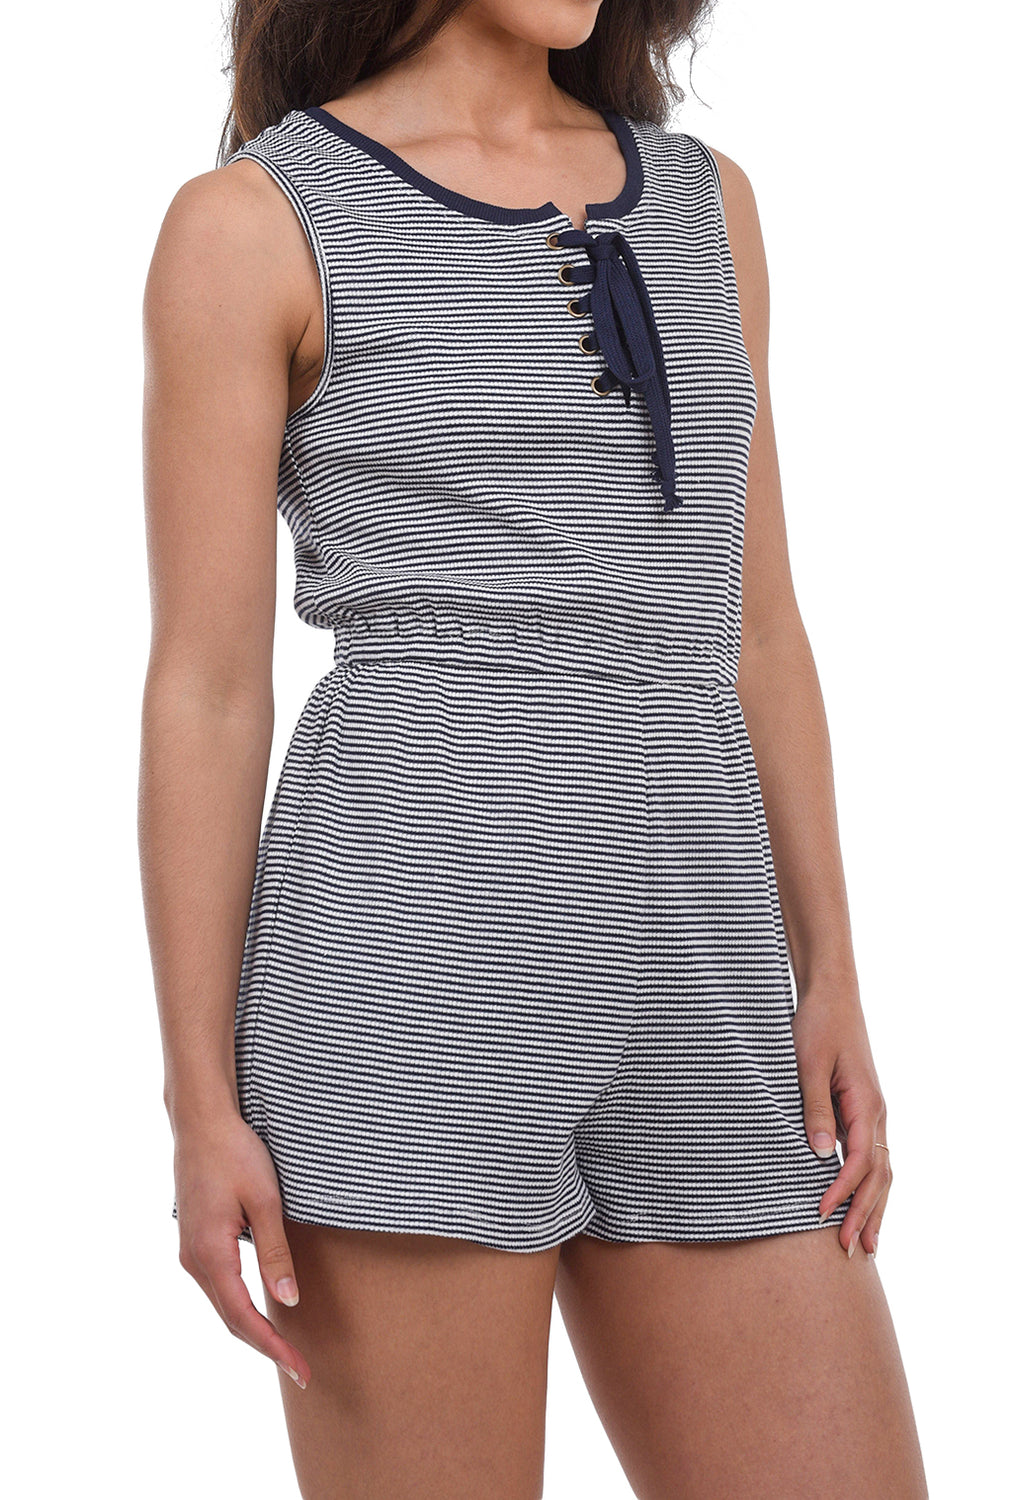 Hem & Thread Textured Rib Romper, Navy